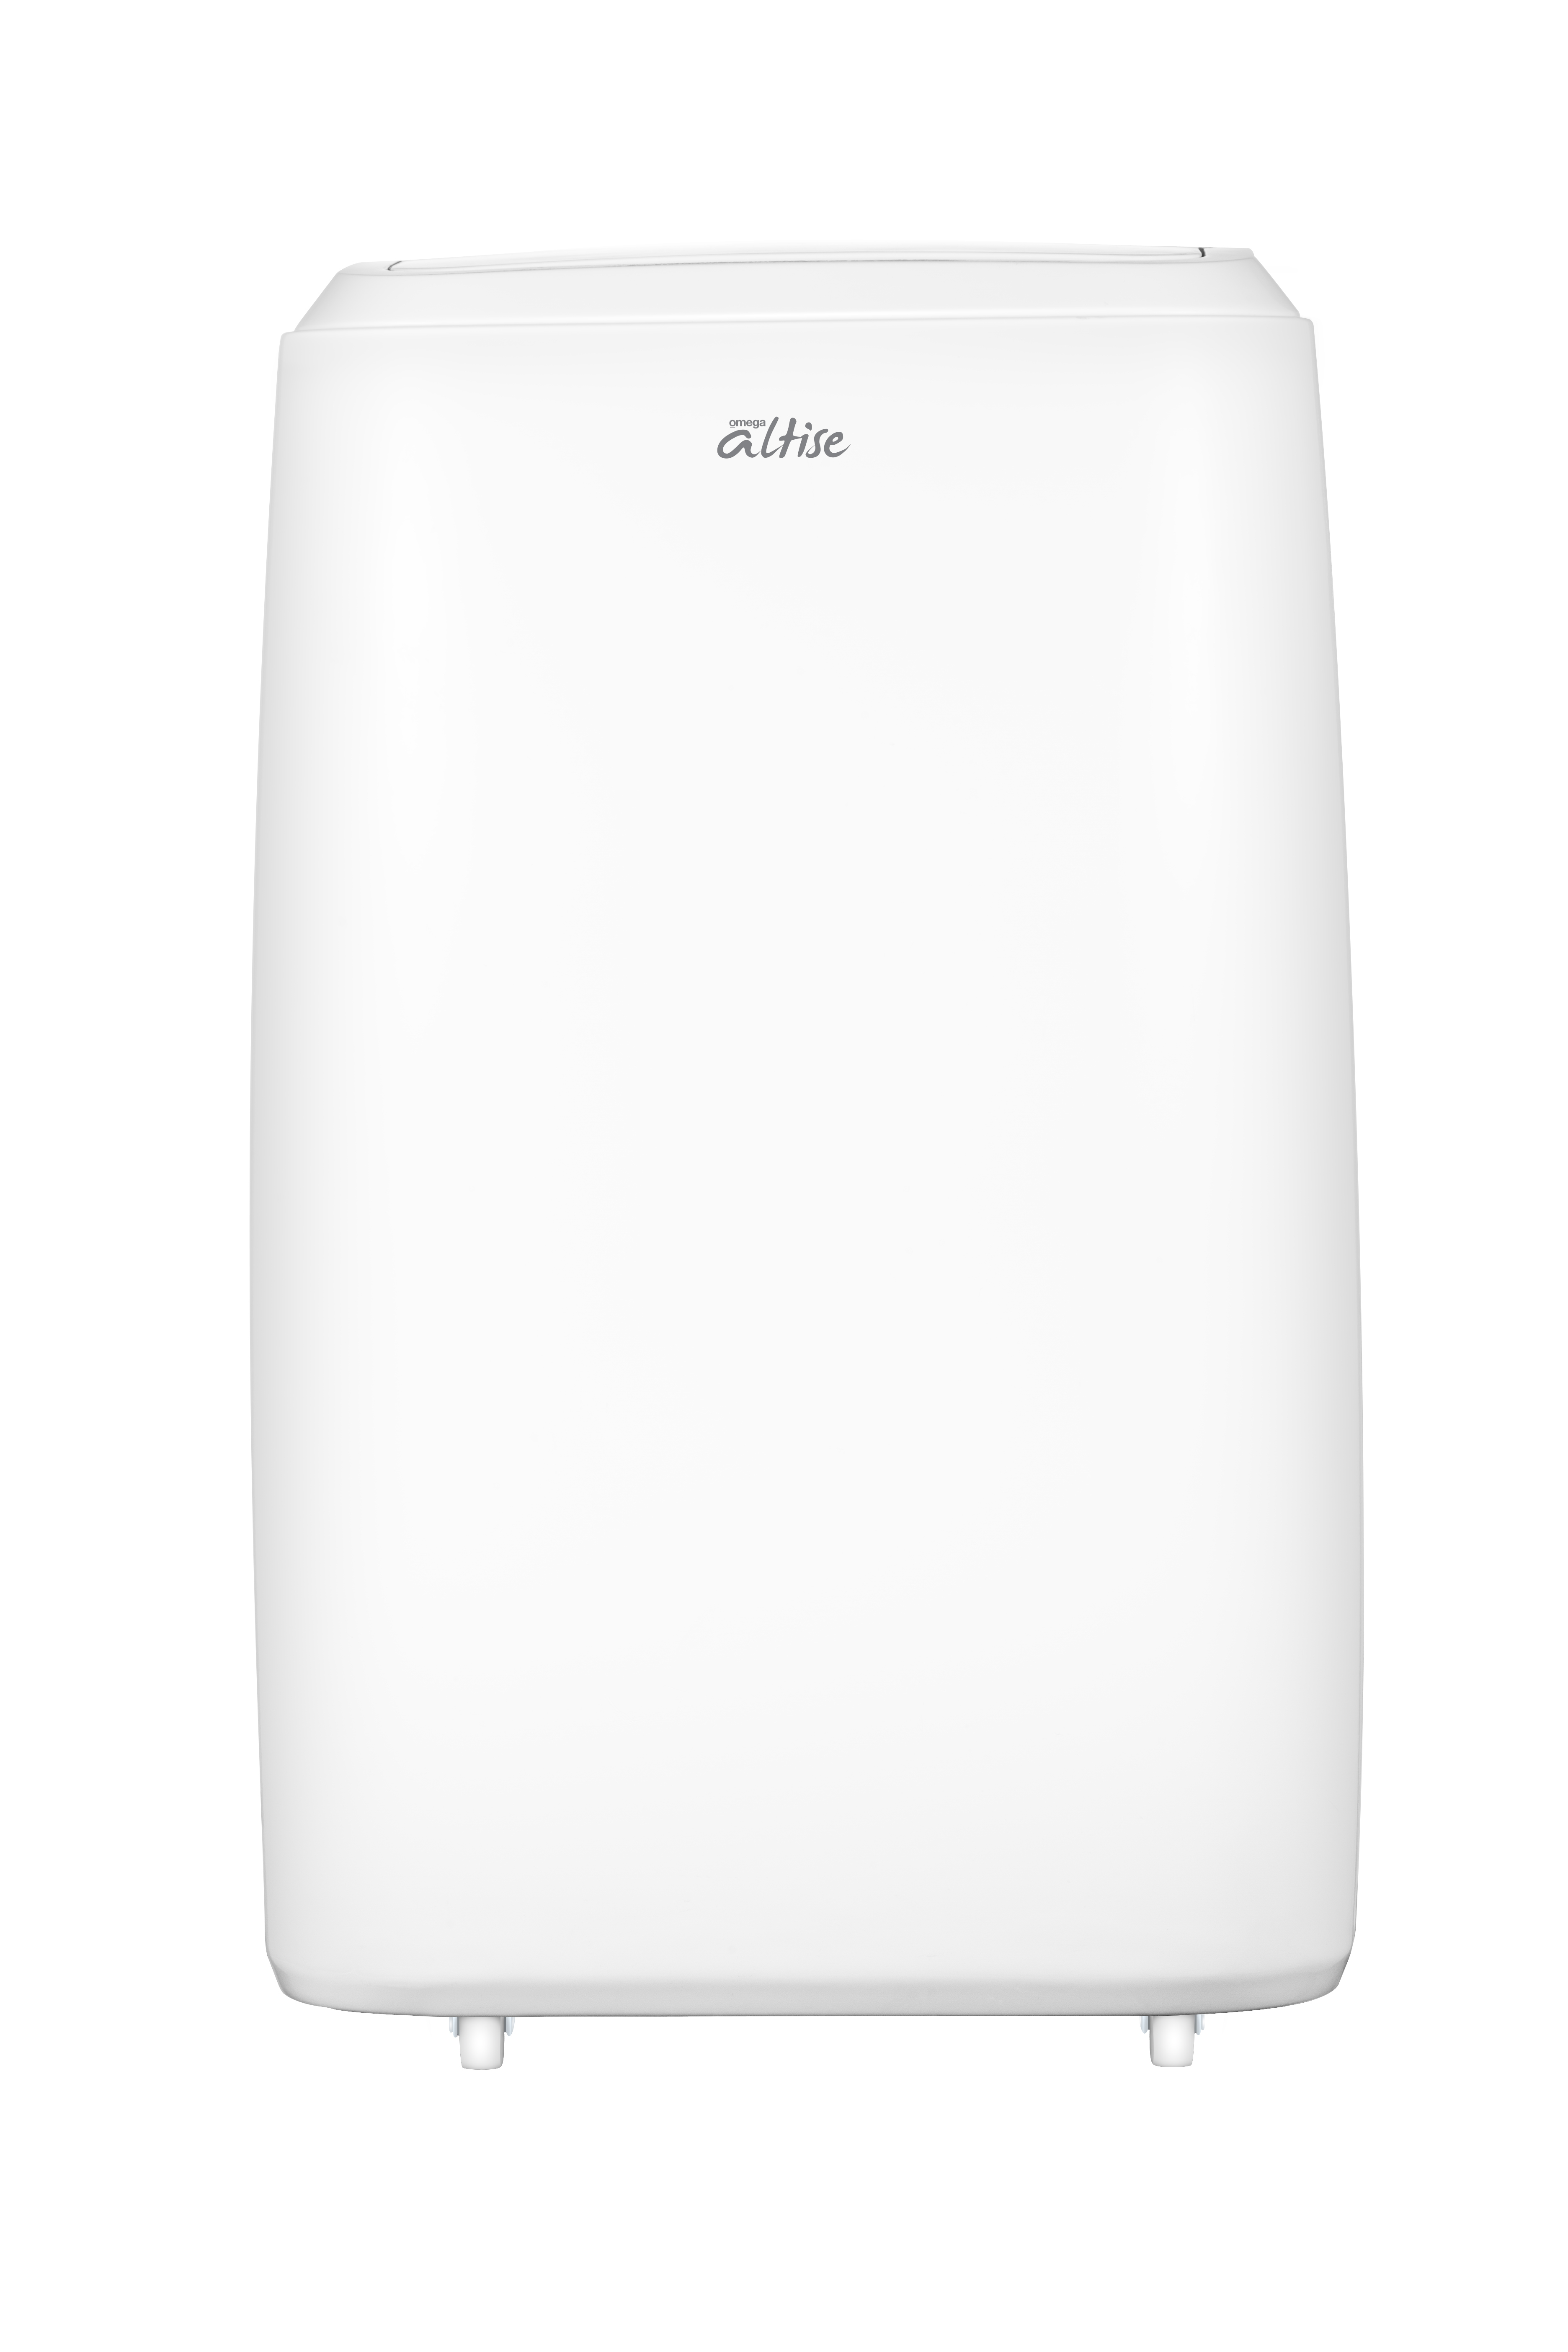 Omega Altise product 3.5kW Slimline Portable Air-Conditioner OAPC127